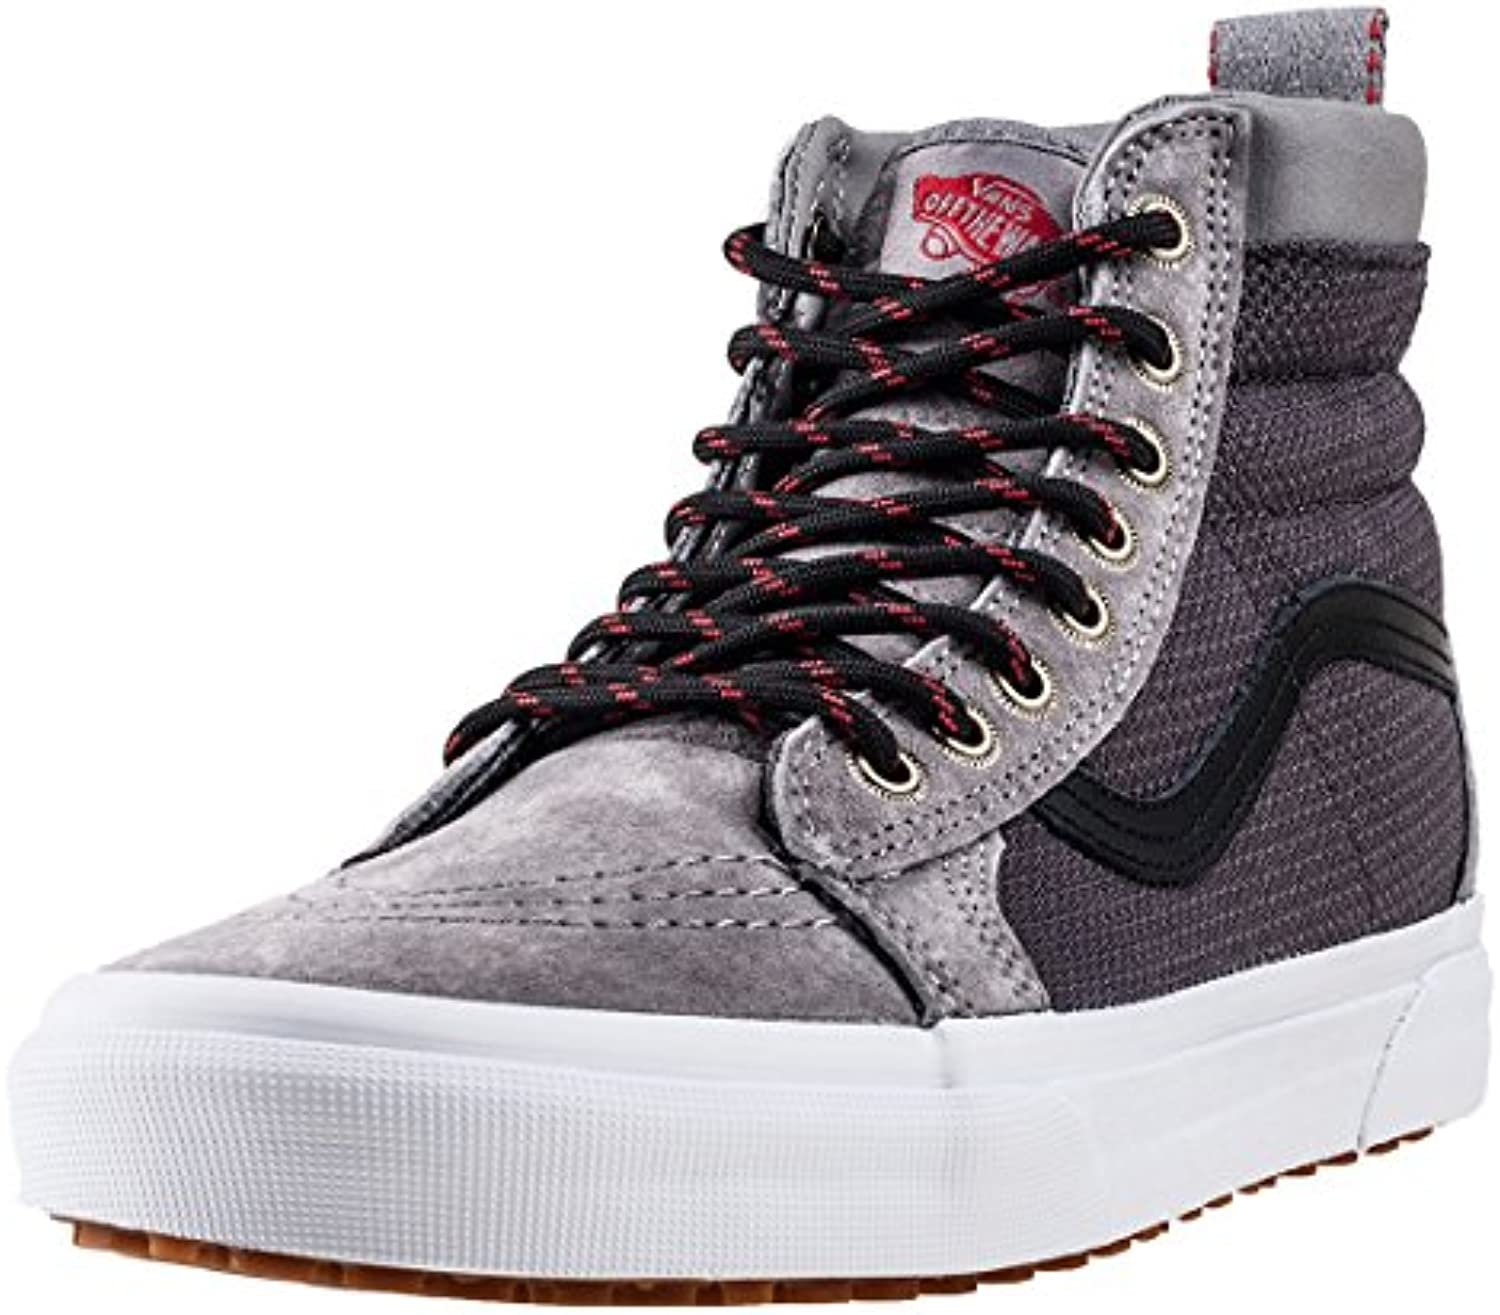 Vans Sk8-hi Mte -Fall 2017-(VA33TXOGS) - Frost Grey - 11